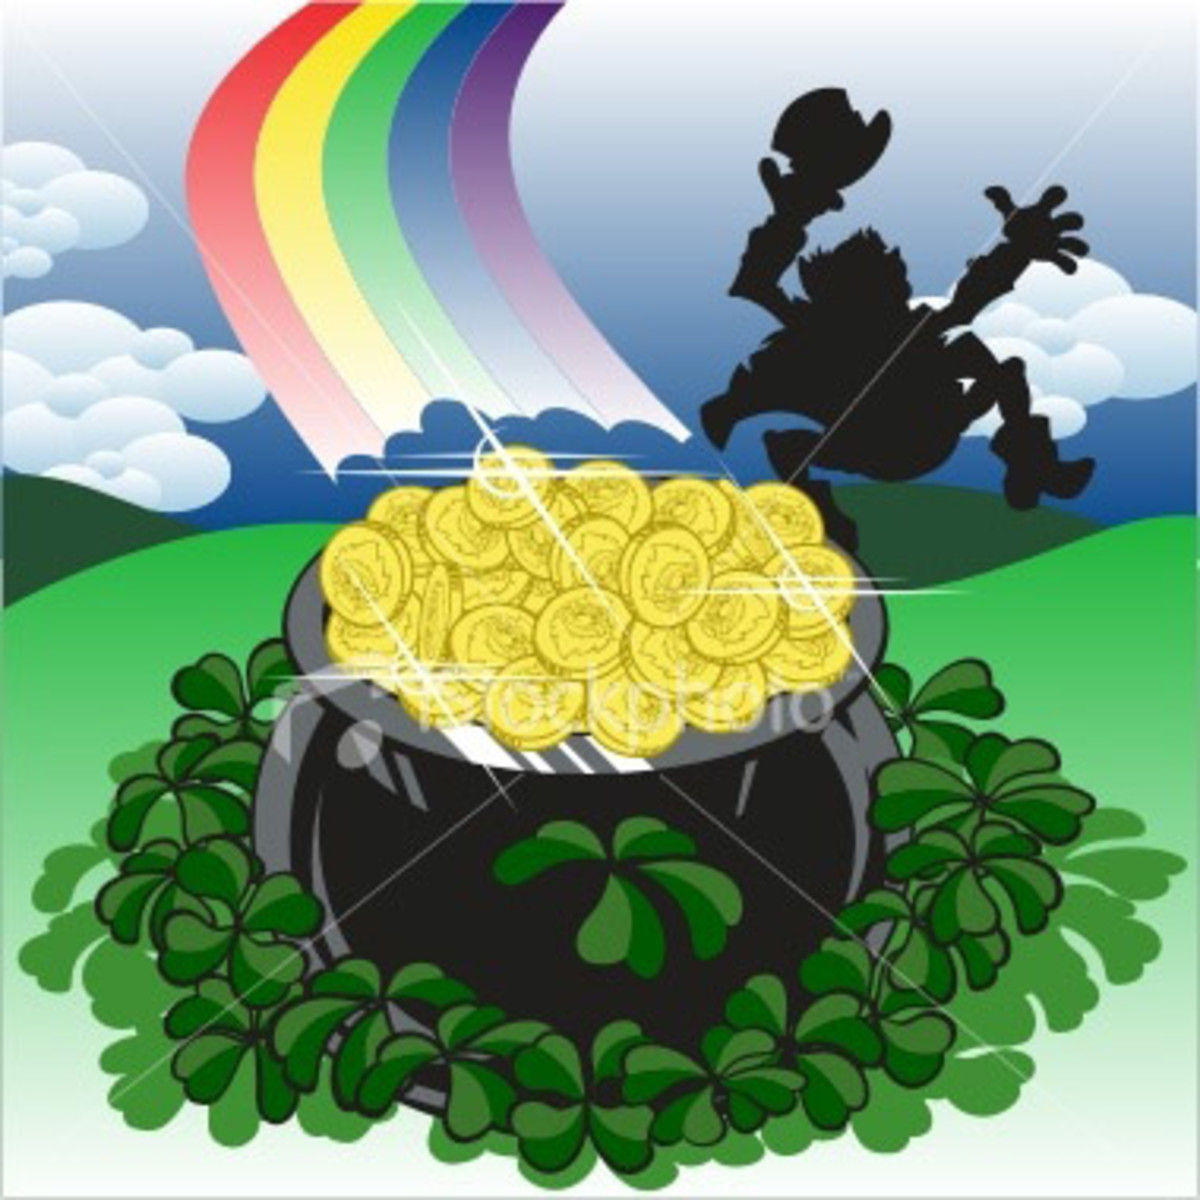 The pot of gold at the end of the rainbow